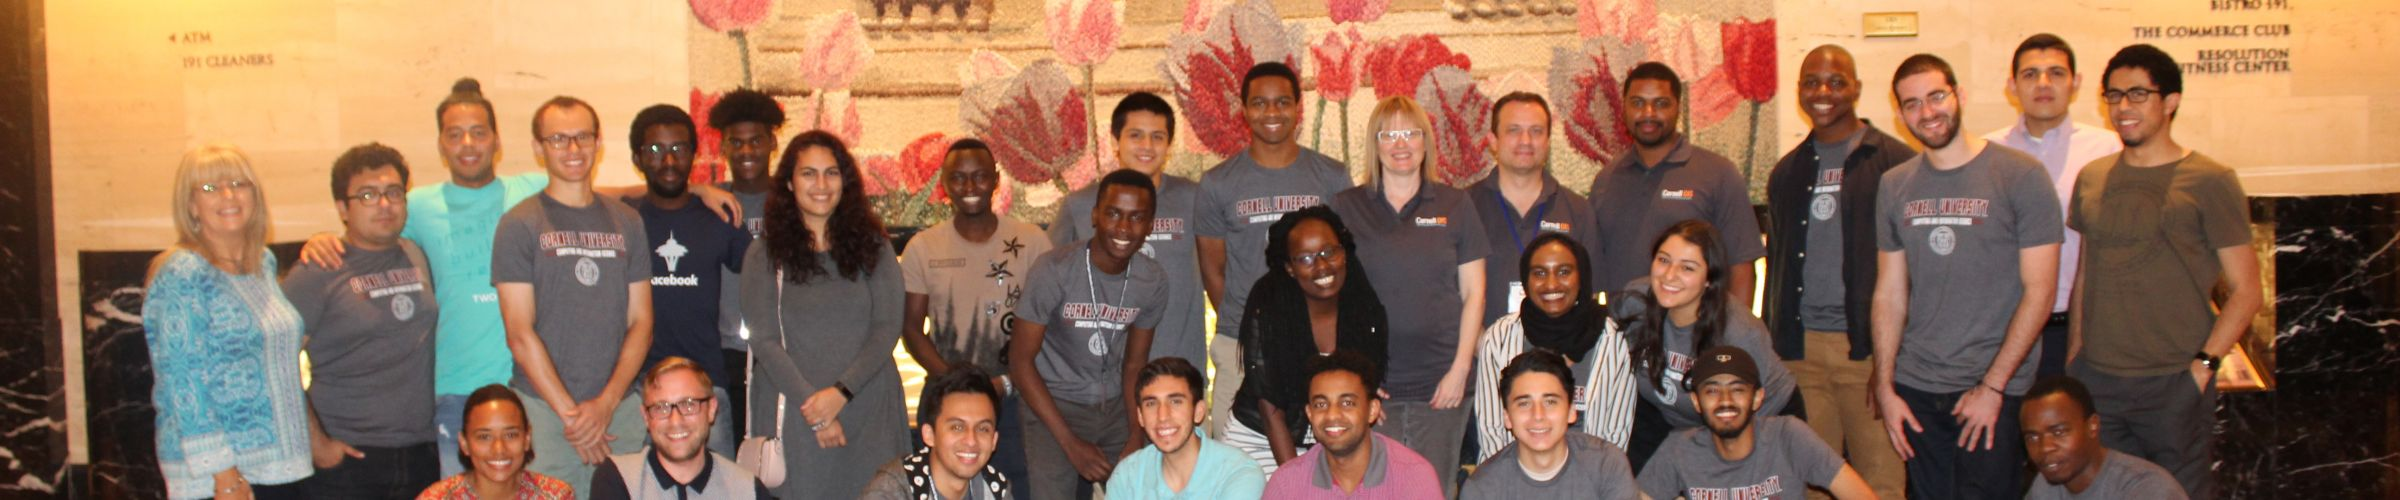 group of diversity students at Tapia conference